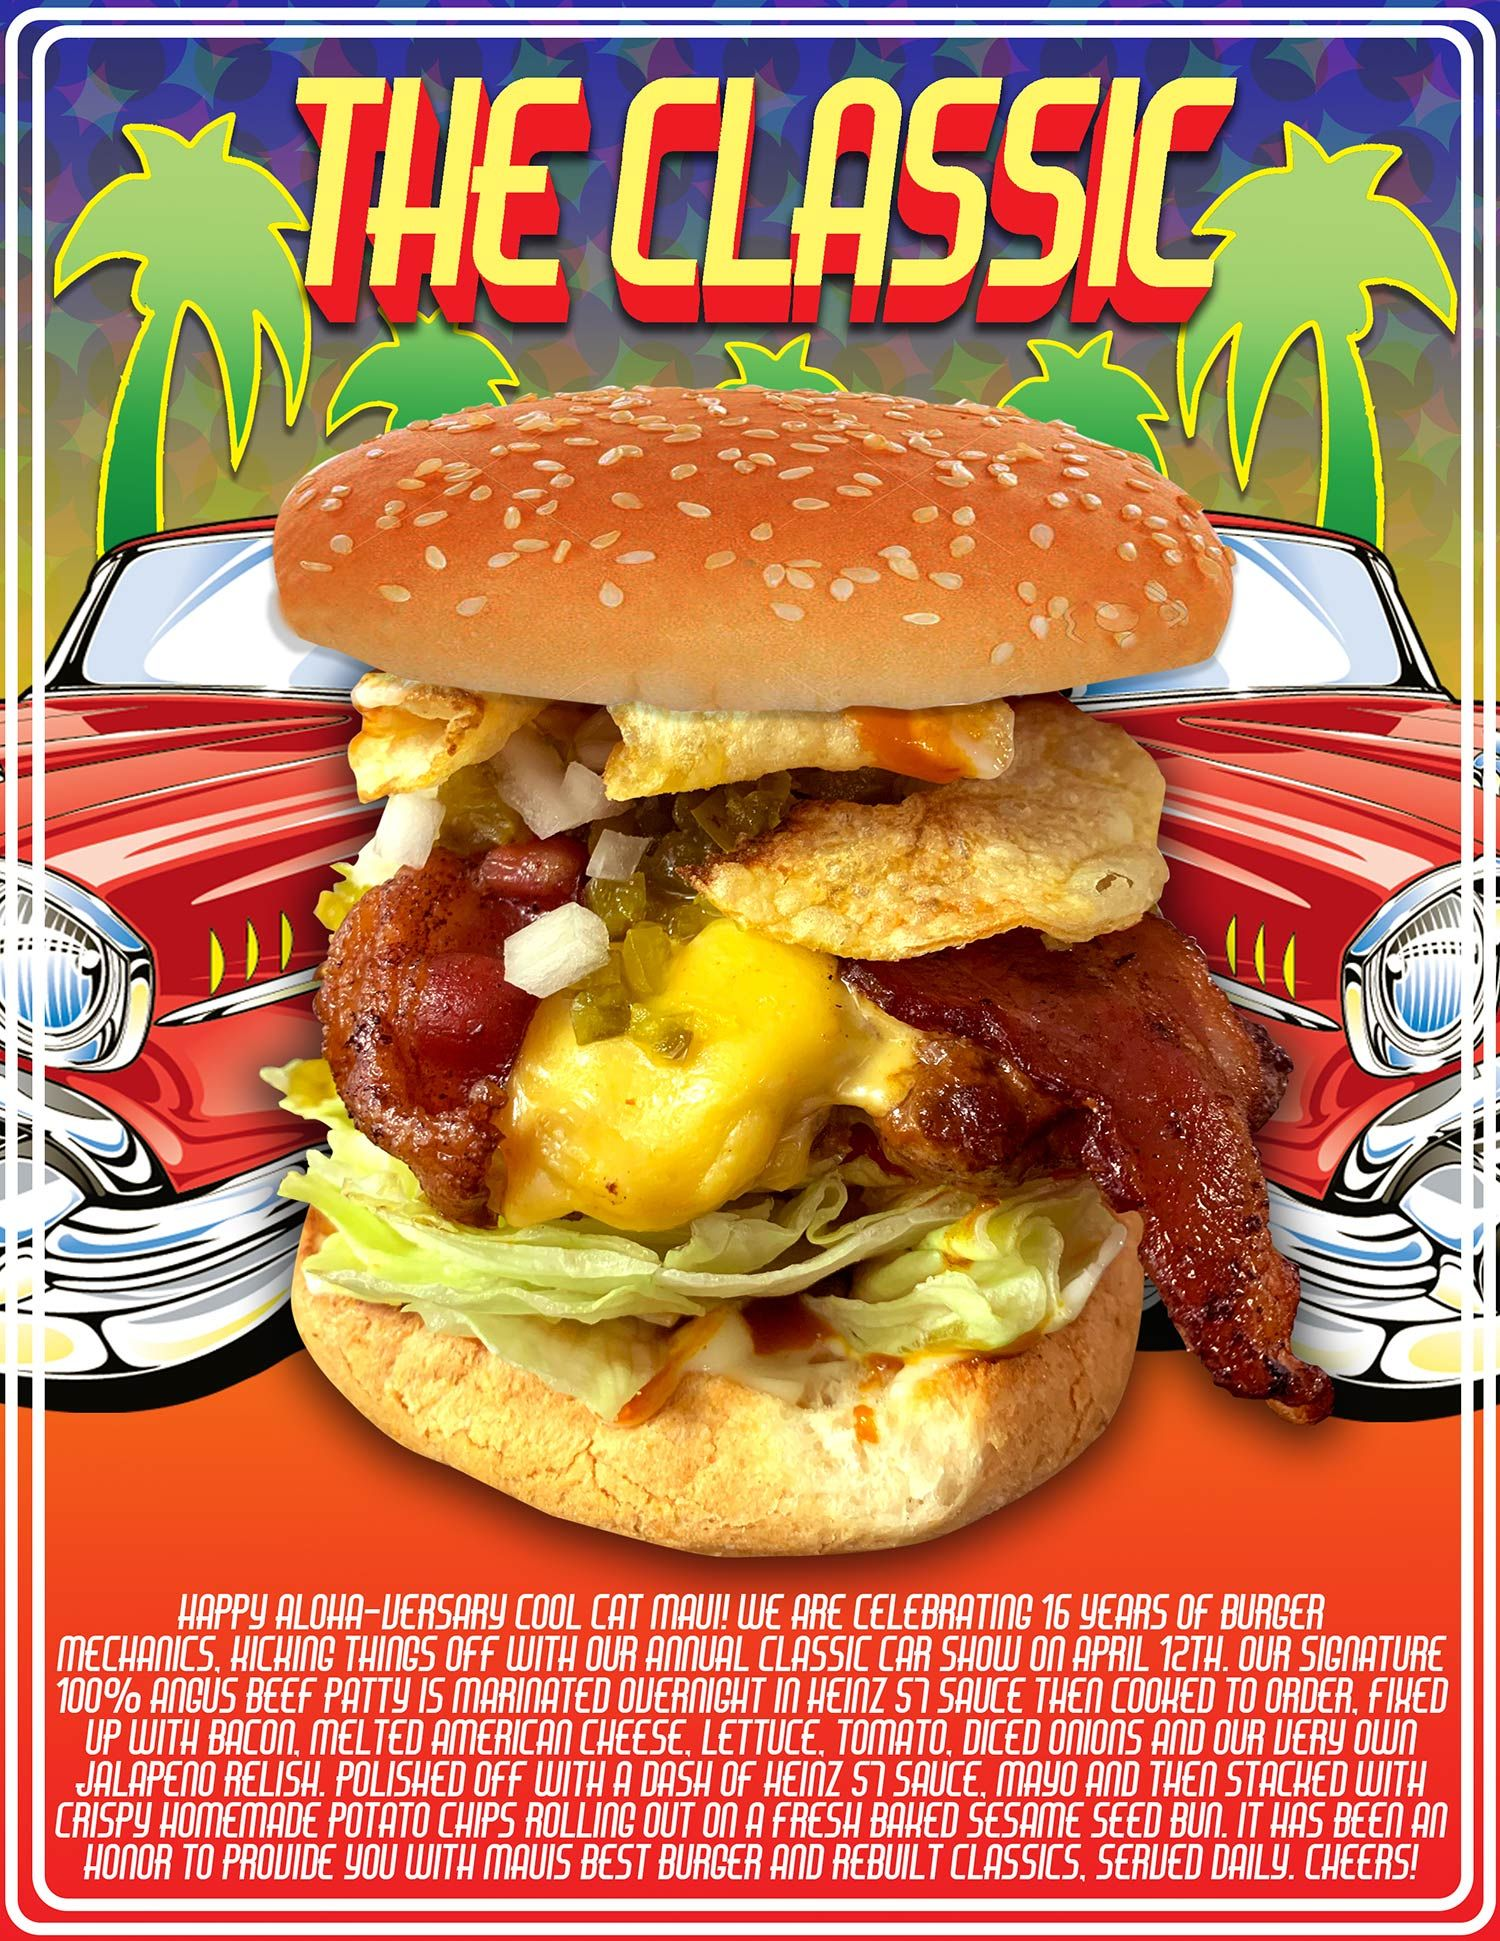 to the Cool Cat Cafe Home of the Best Burger on